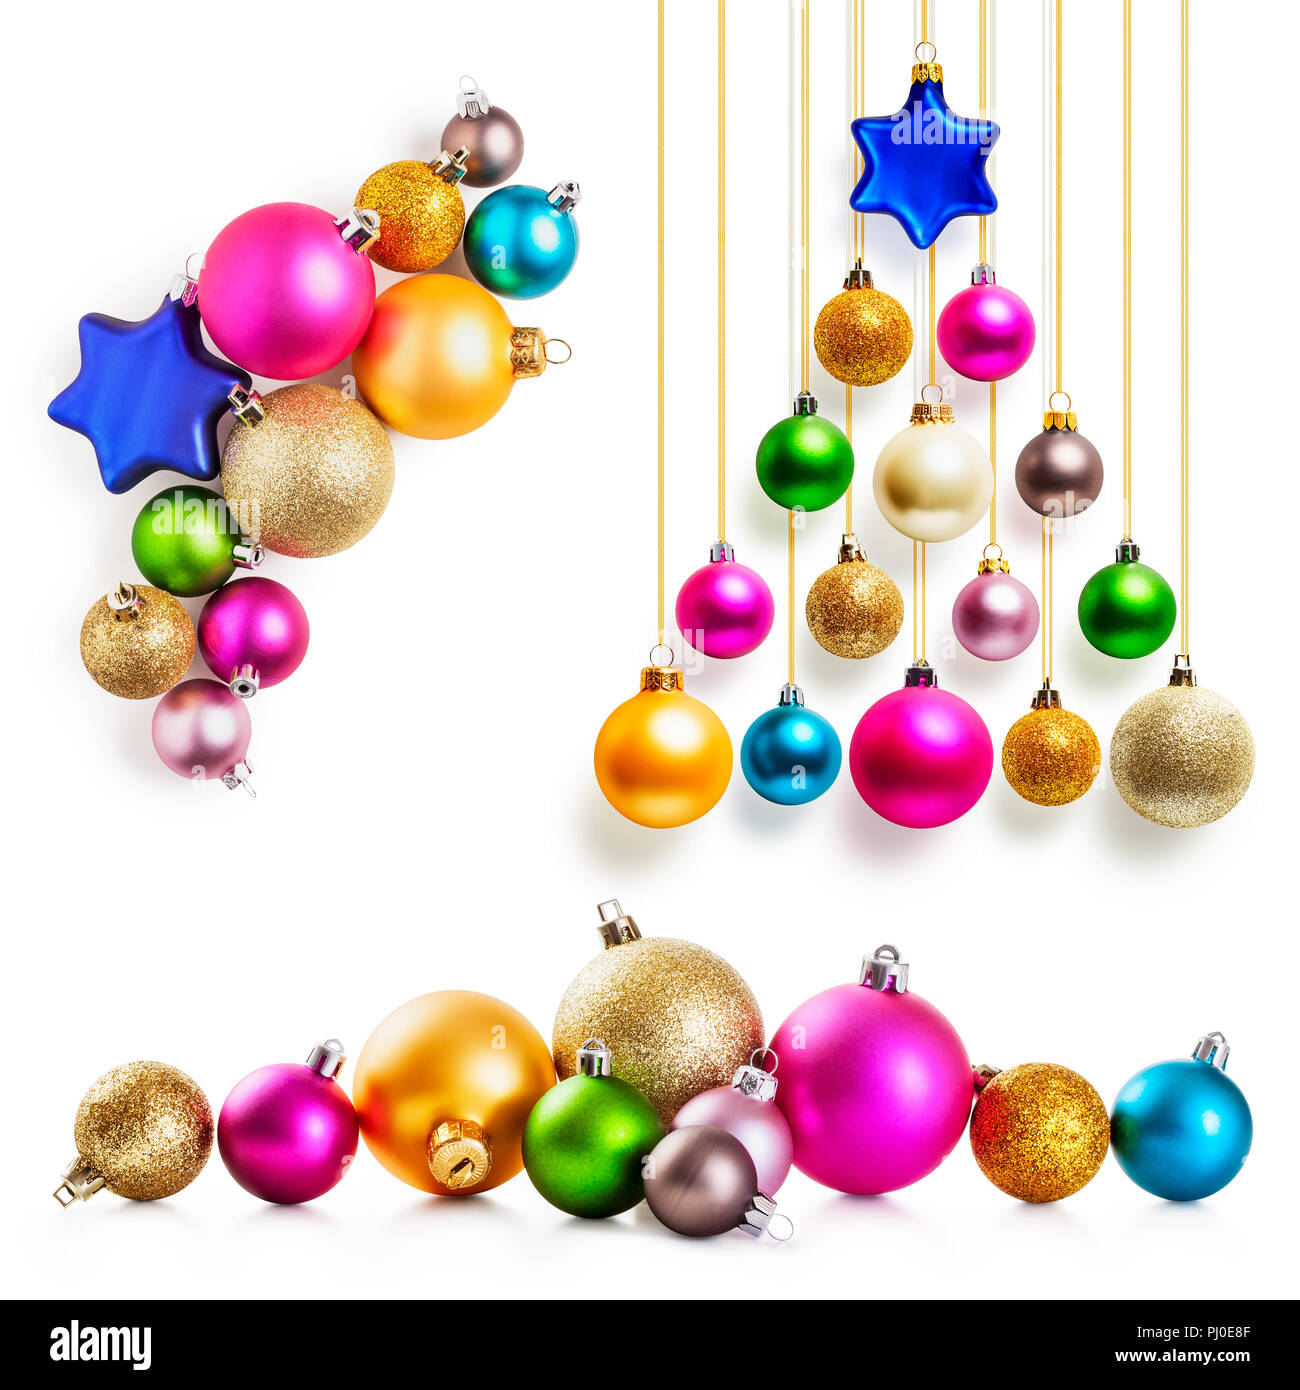 Christmas Balls Collection Christmas Tree Of Colorful Baubles With Gold Ribbon Isolated On White Background Design Elements Stock Photo Alamy